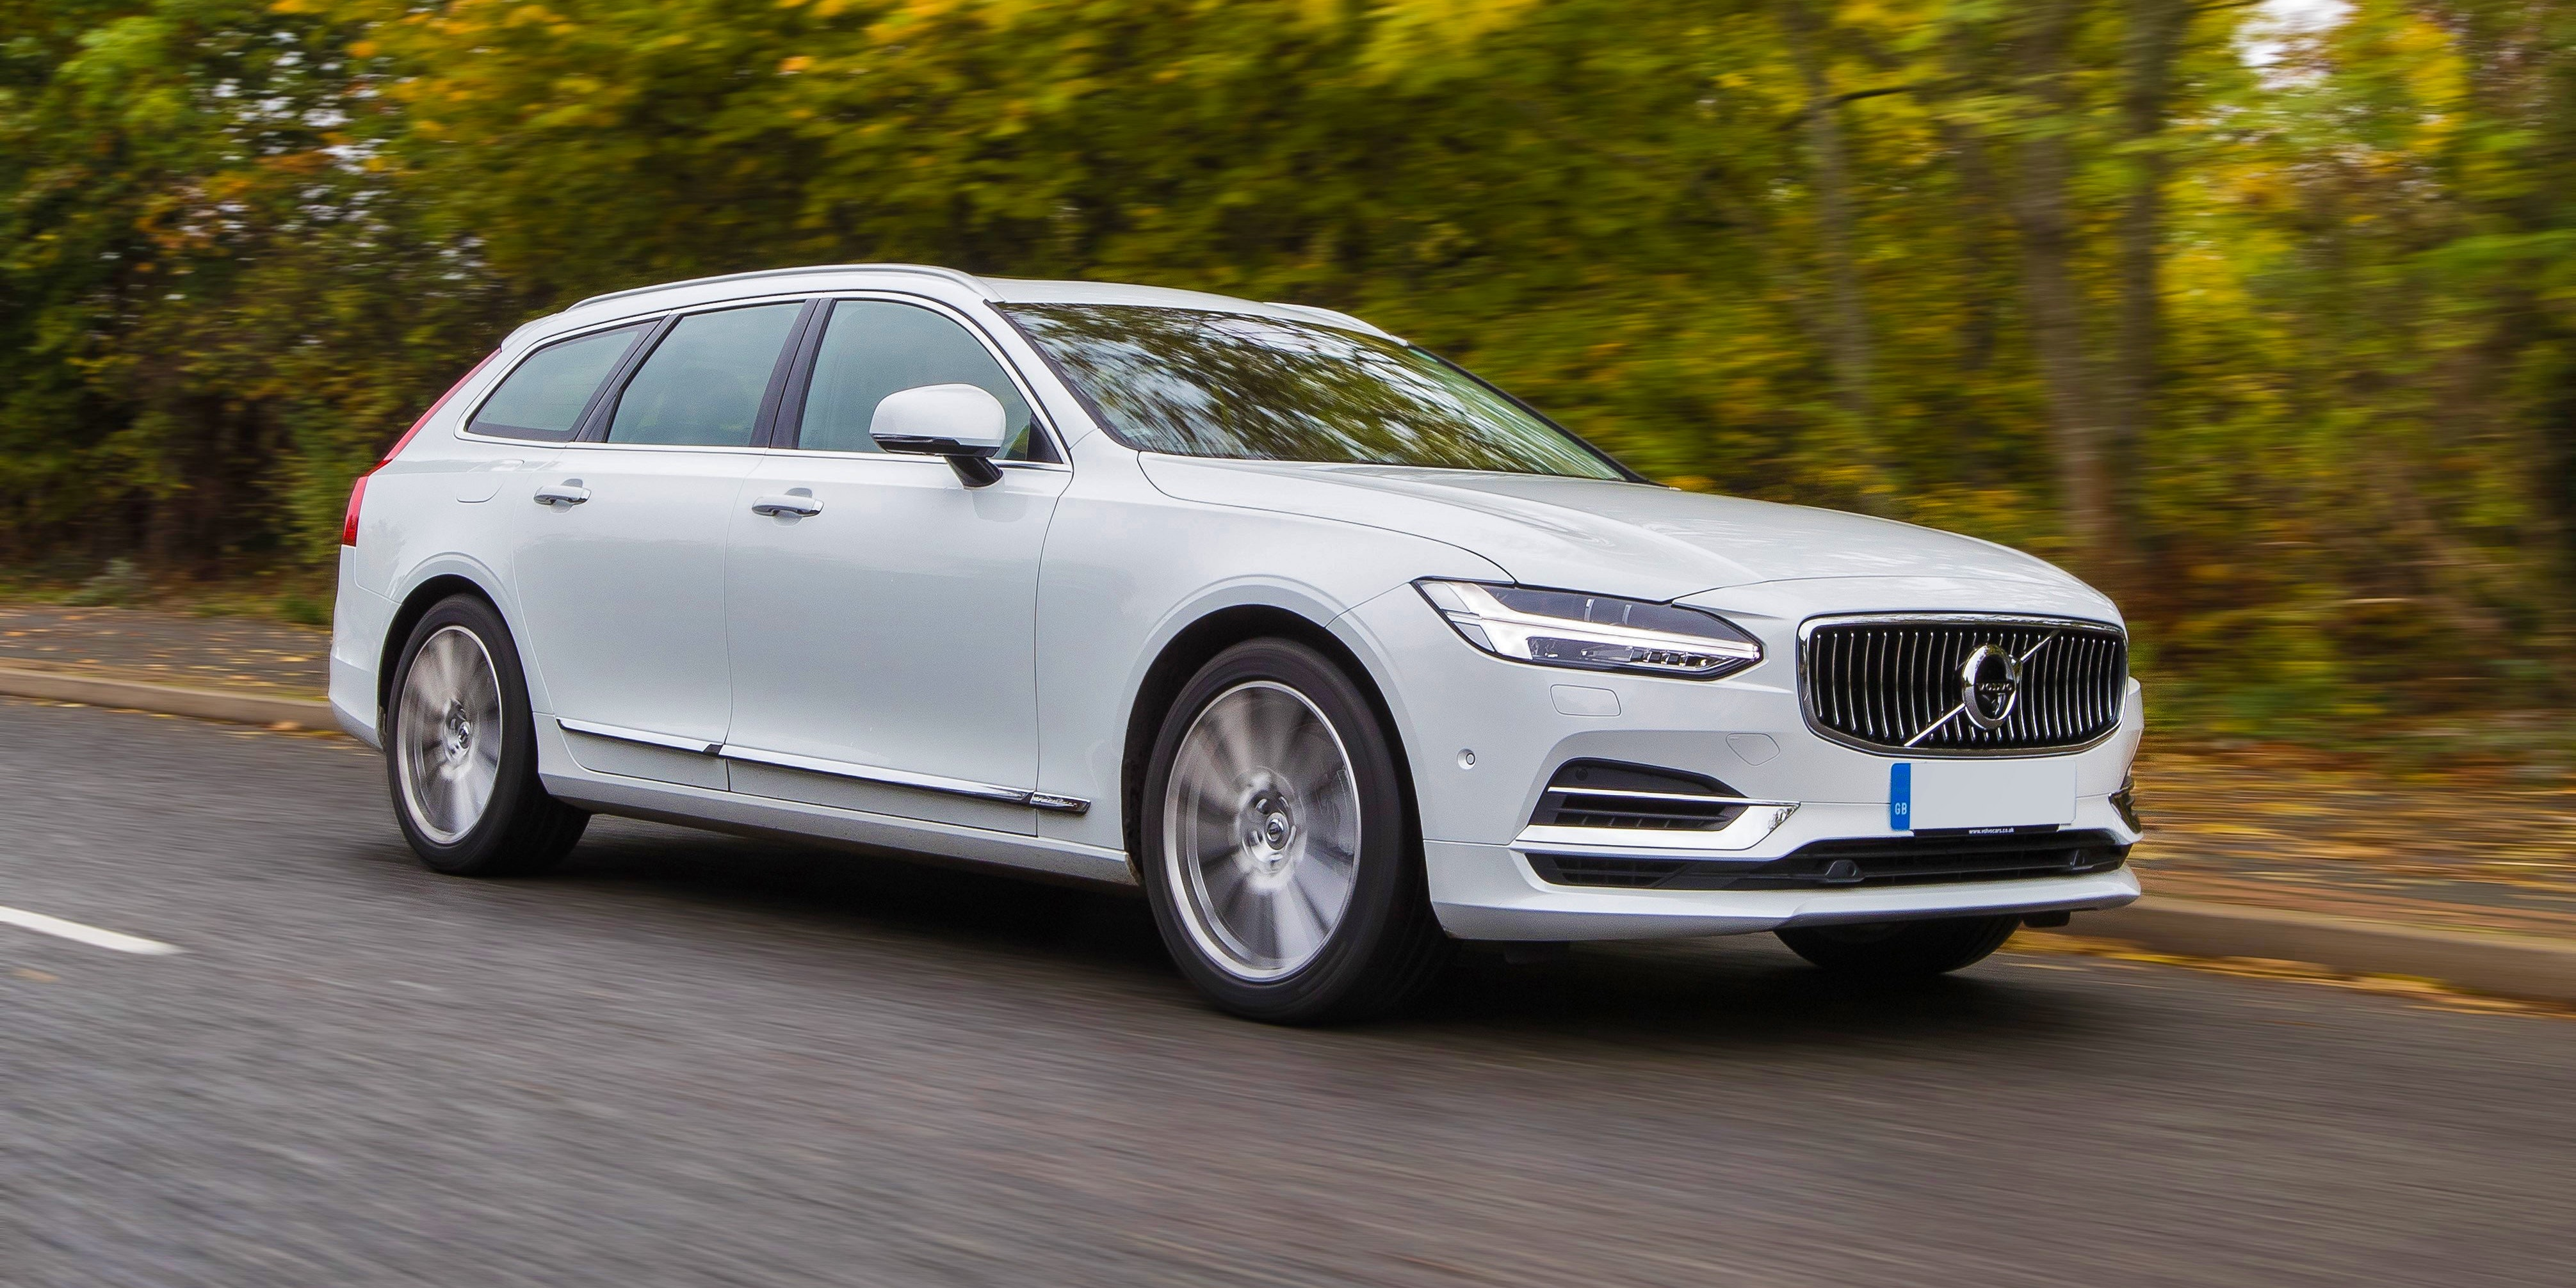 2018 volvo v90 safest cars hero.jpg?ixlib=rb 1.1